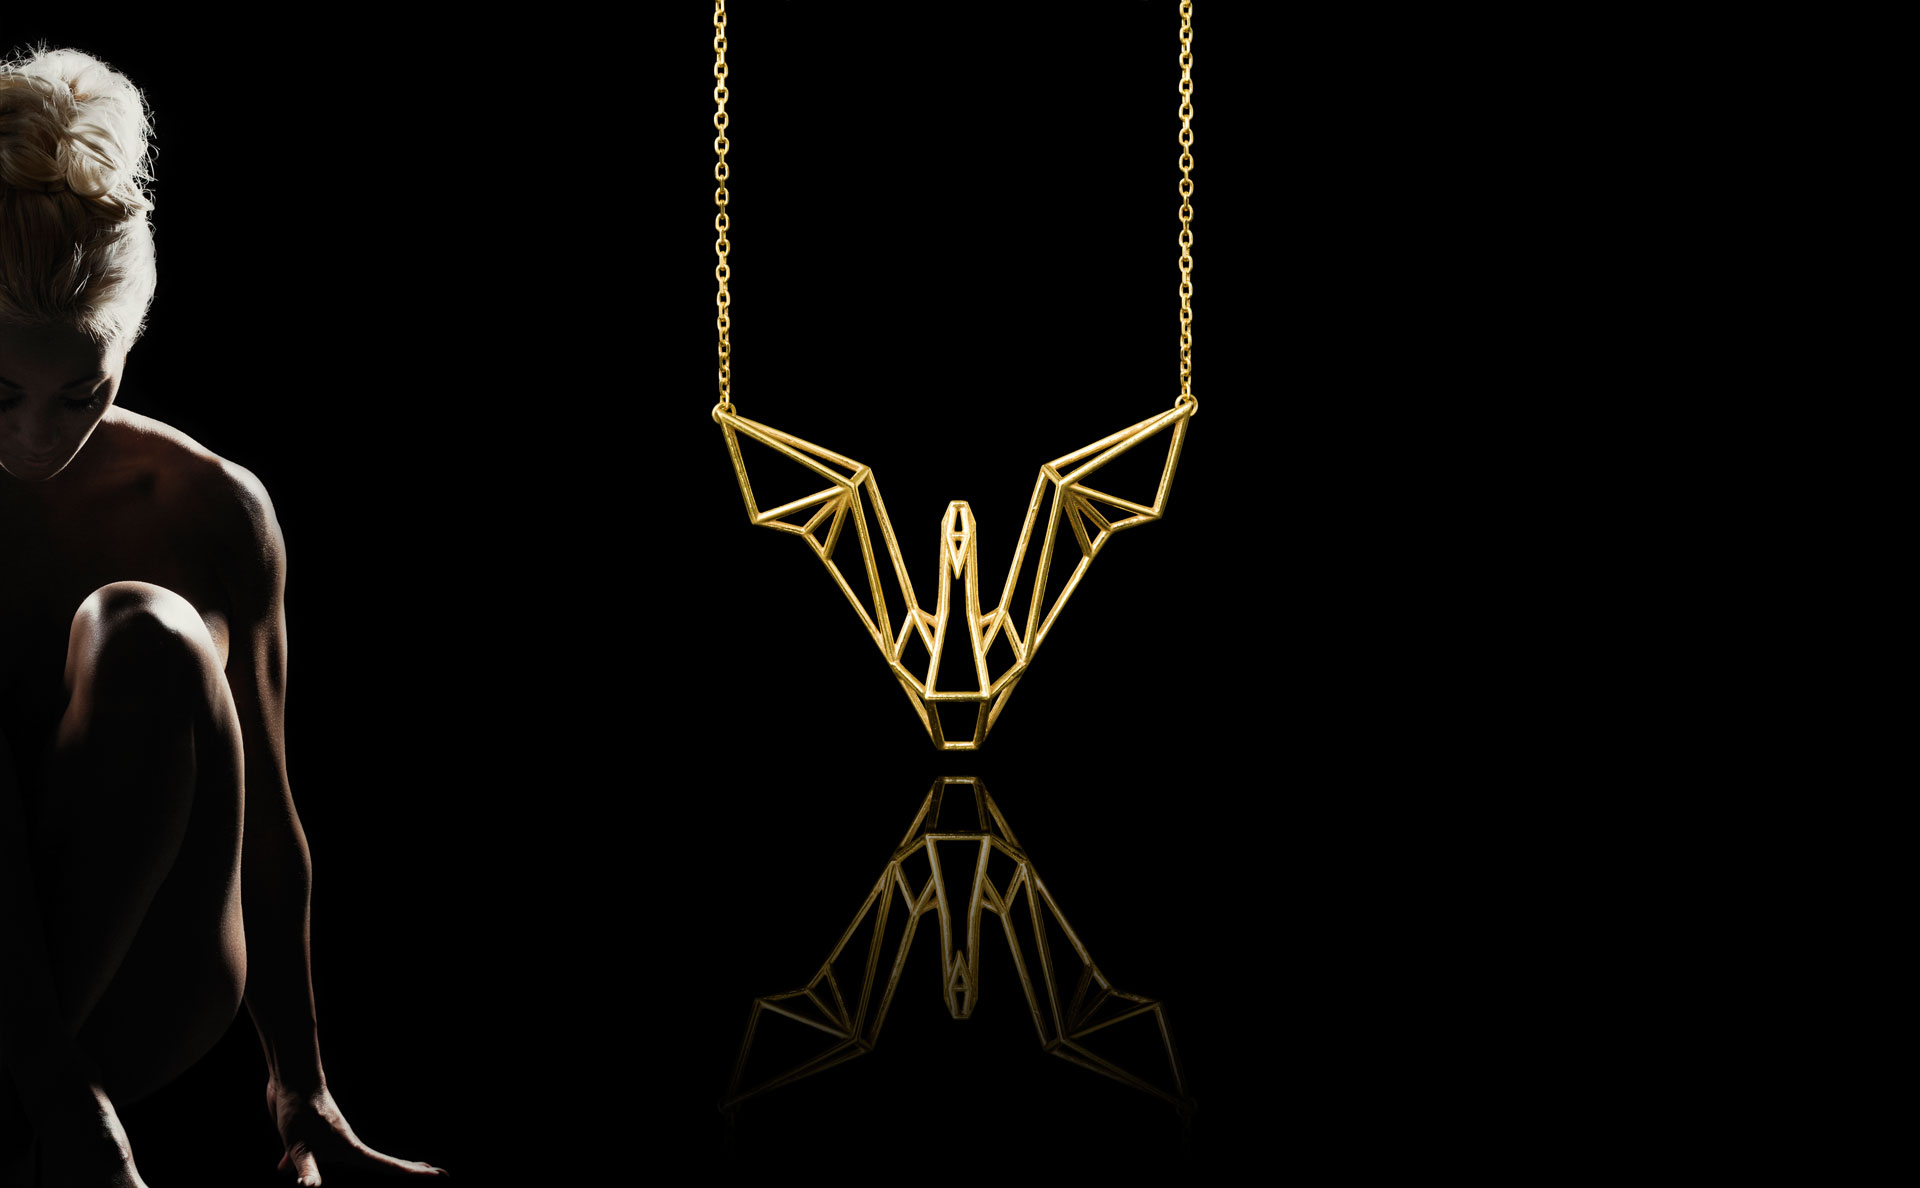 SEB Gold Silver Swan Bird Necklace Icelandic Jewellery Geometric Design Black Nordic Love Elegant